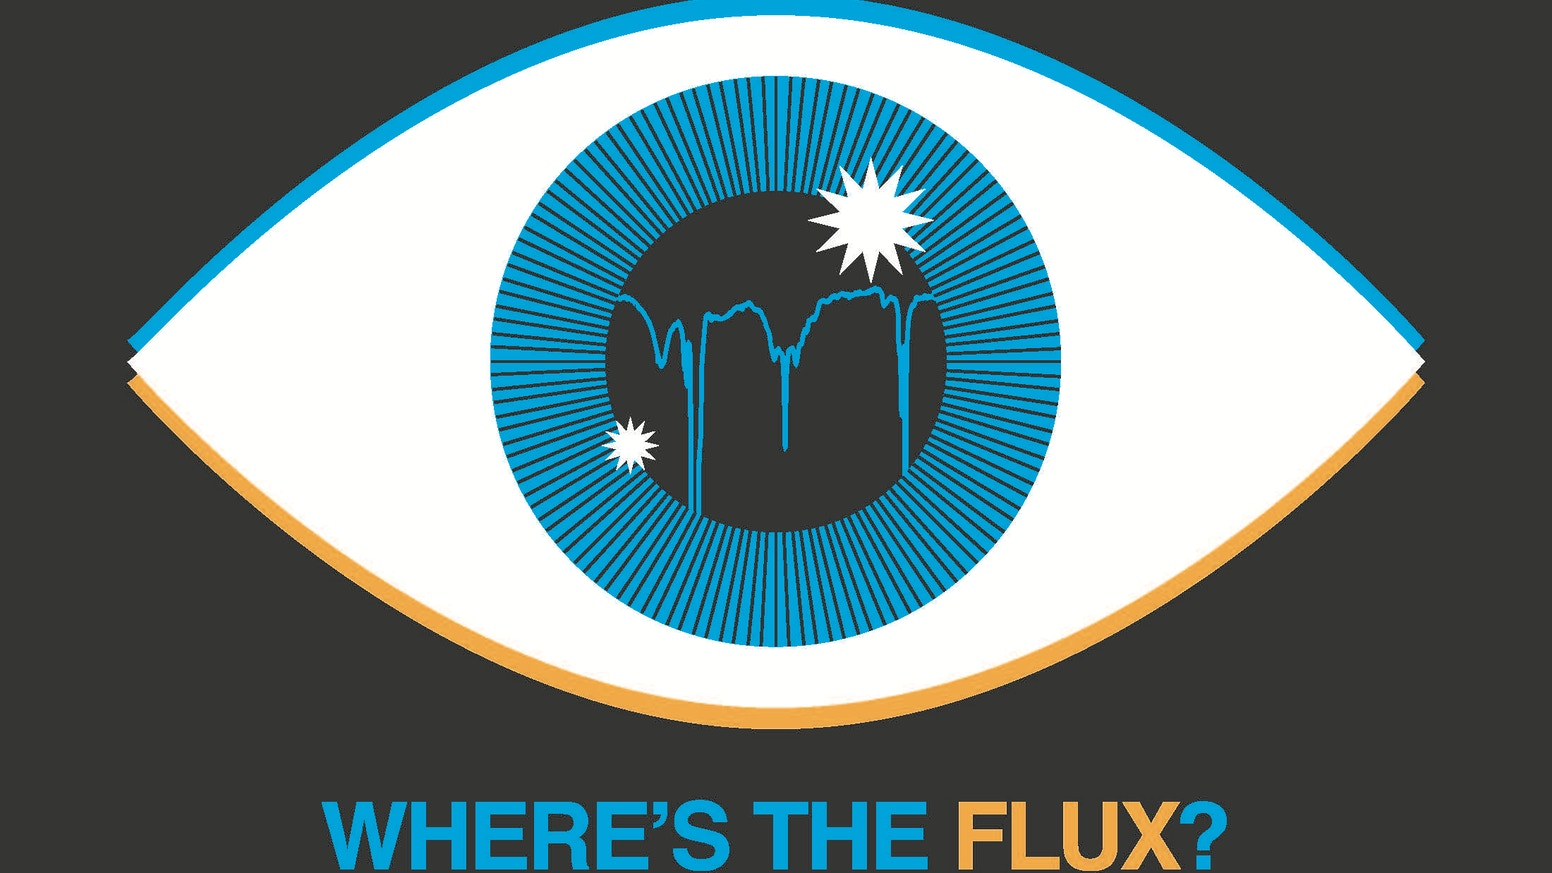 Help astronomers get the data they need to unravel one of the biggest mysteries of all time, KIC 8462852 --- Where's the Flux?